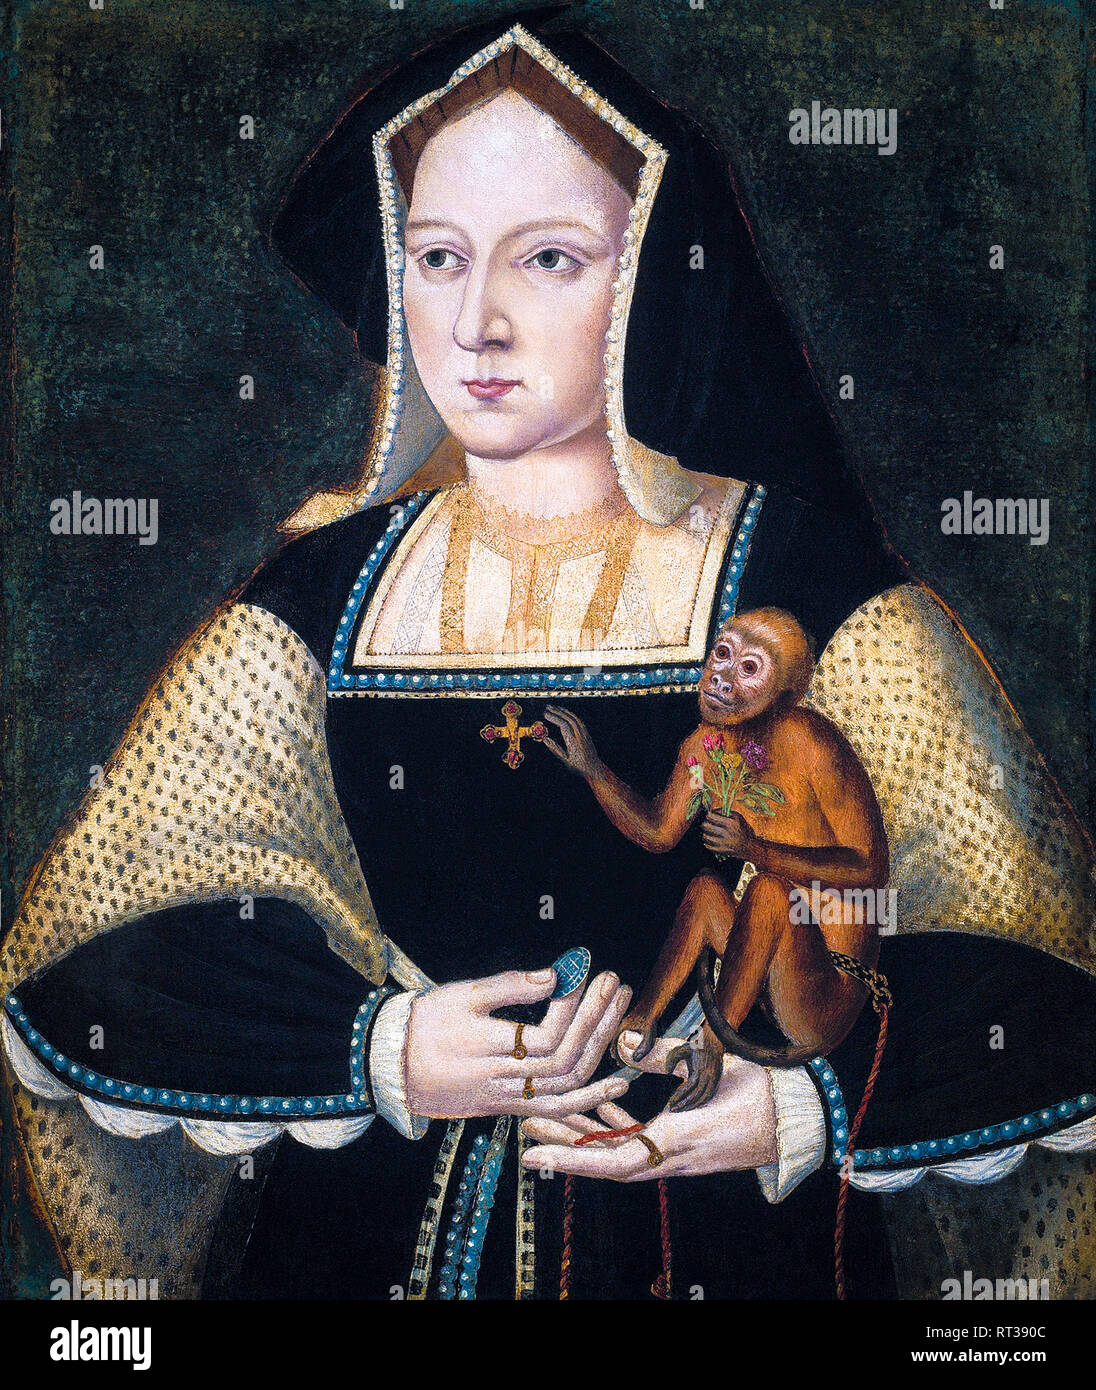 Catherine of Aragon (1485-1536), portrait painting, 1530 - Stock Image